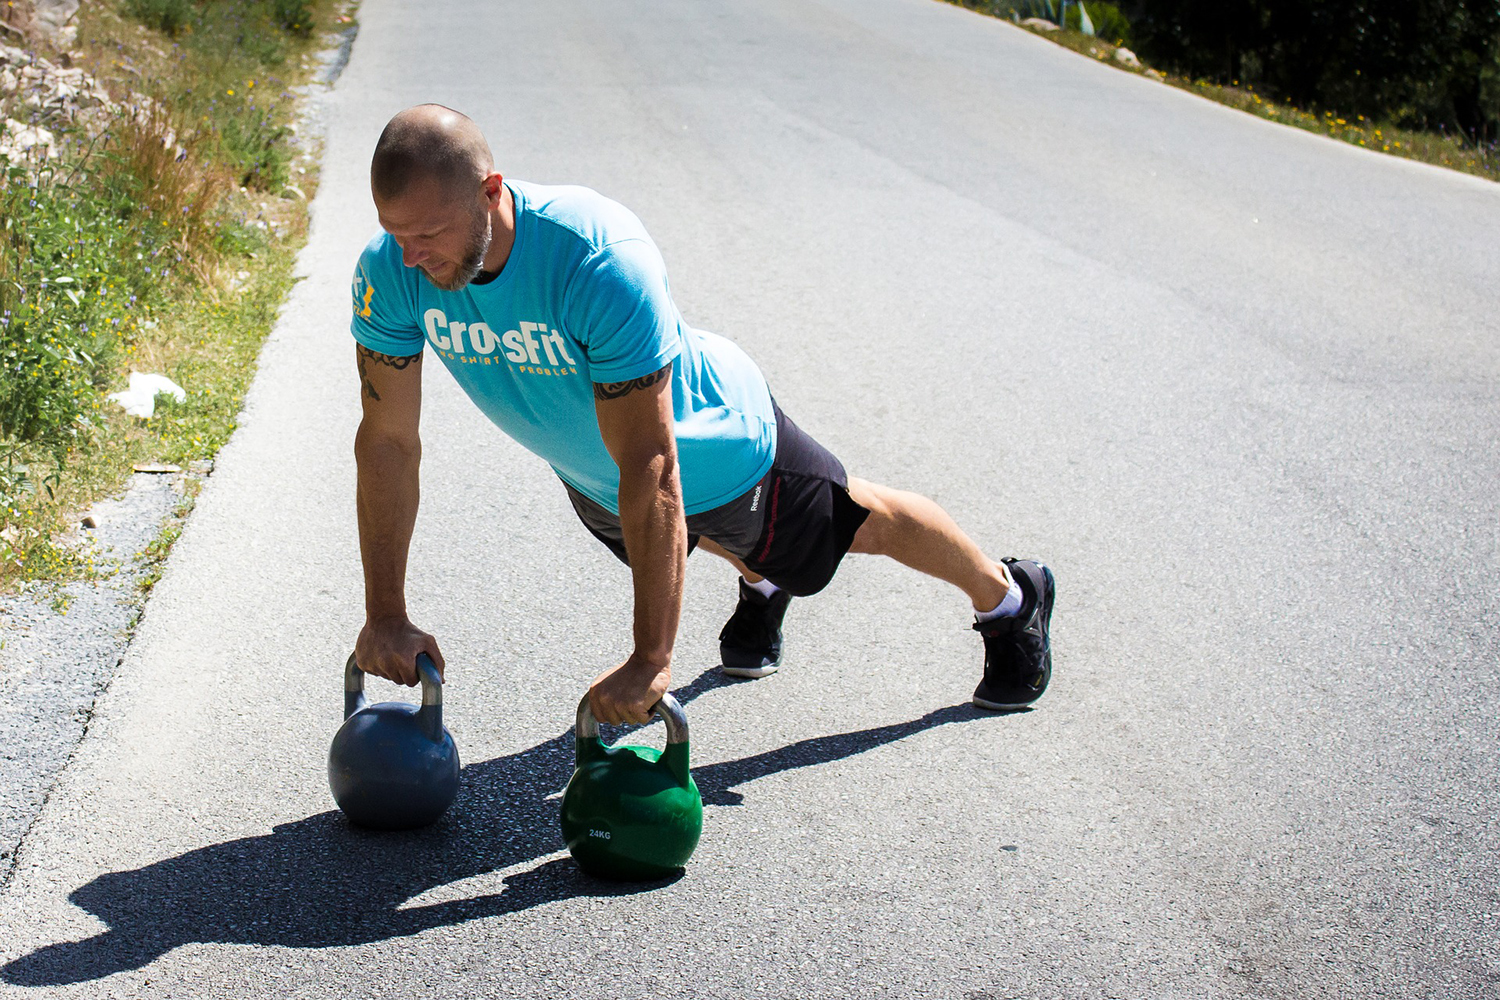 Crossfit Man Exercising With Kettlebells Outdoors